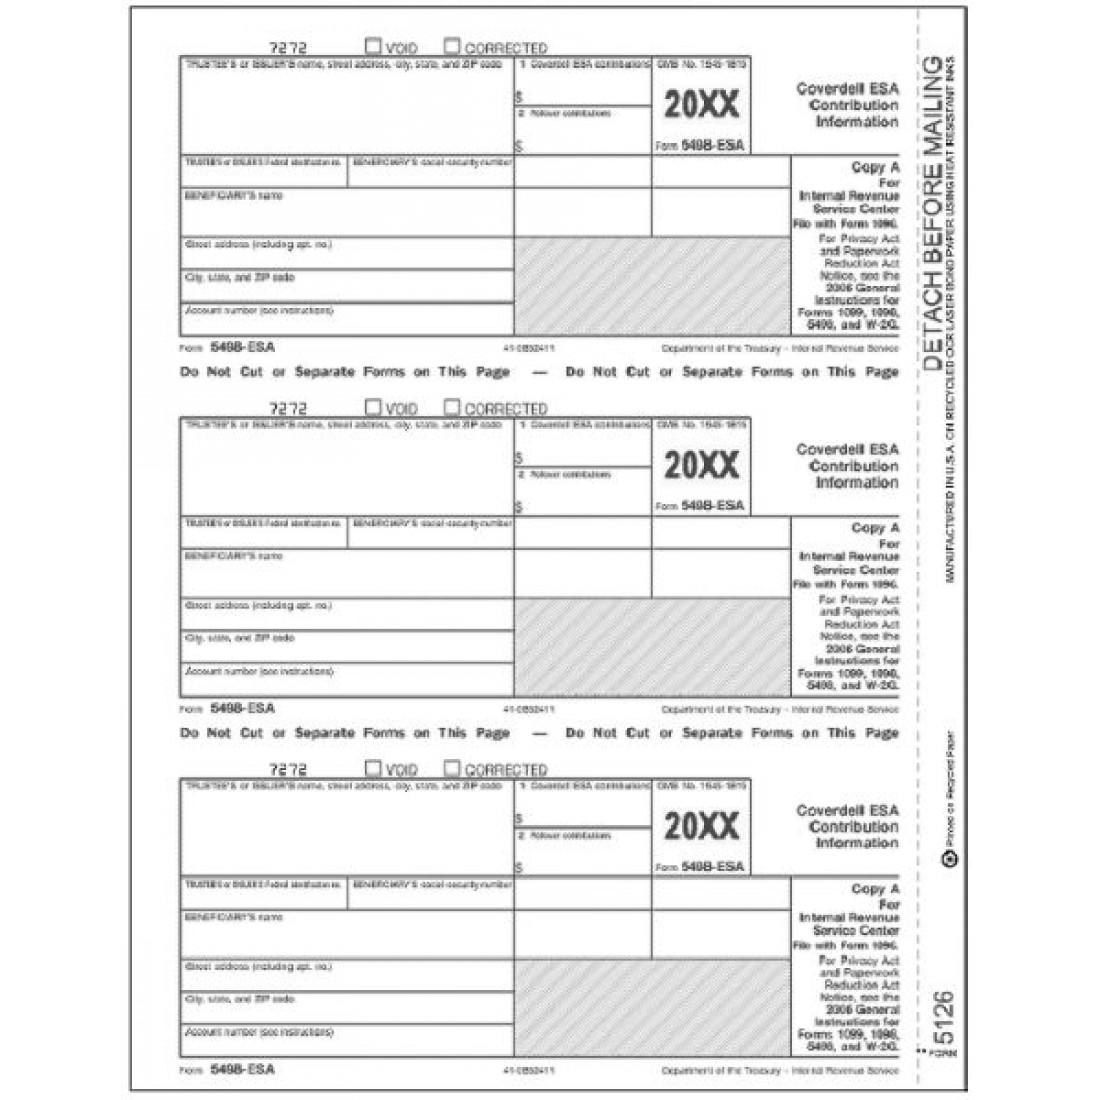 Laser 5498 ESA Tax Forms Federal Copy A